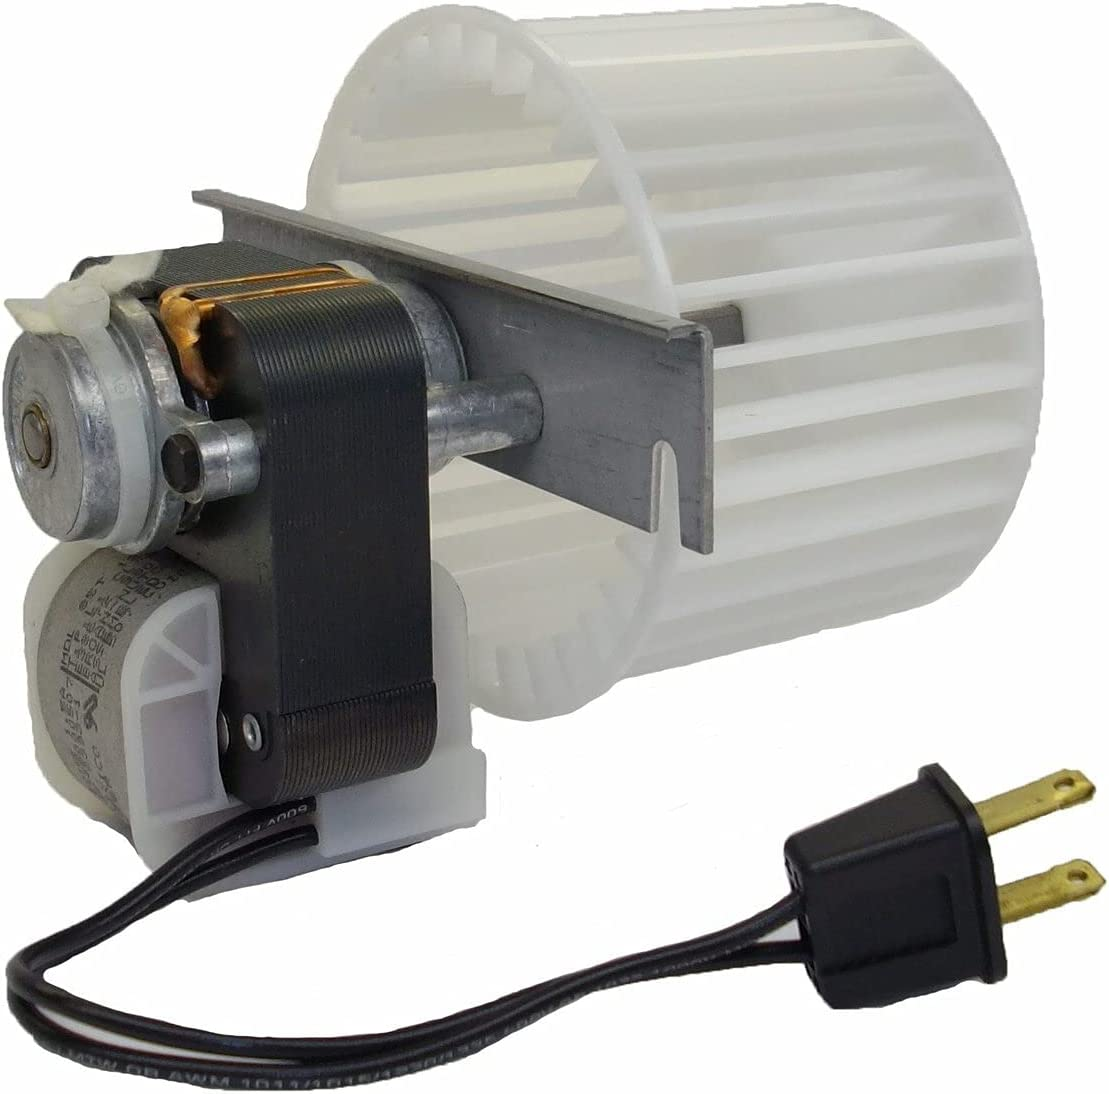 Nutone Broan 162-A 162-B New product Max 88% OFF type Vent Fan RPM 2650 Motor # 97005906 1.